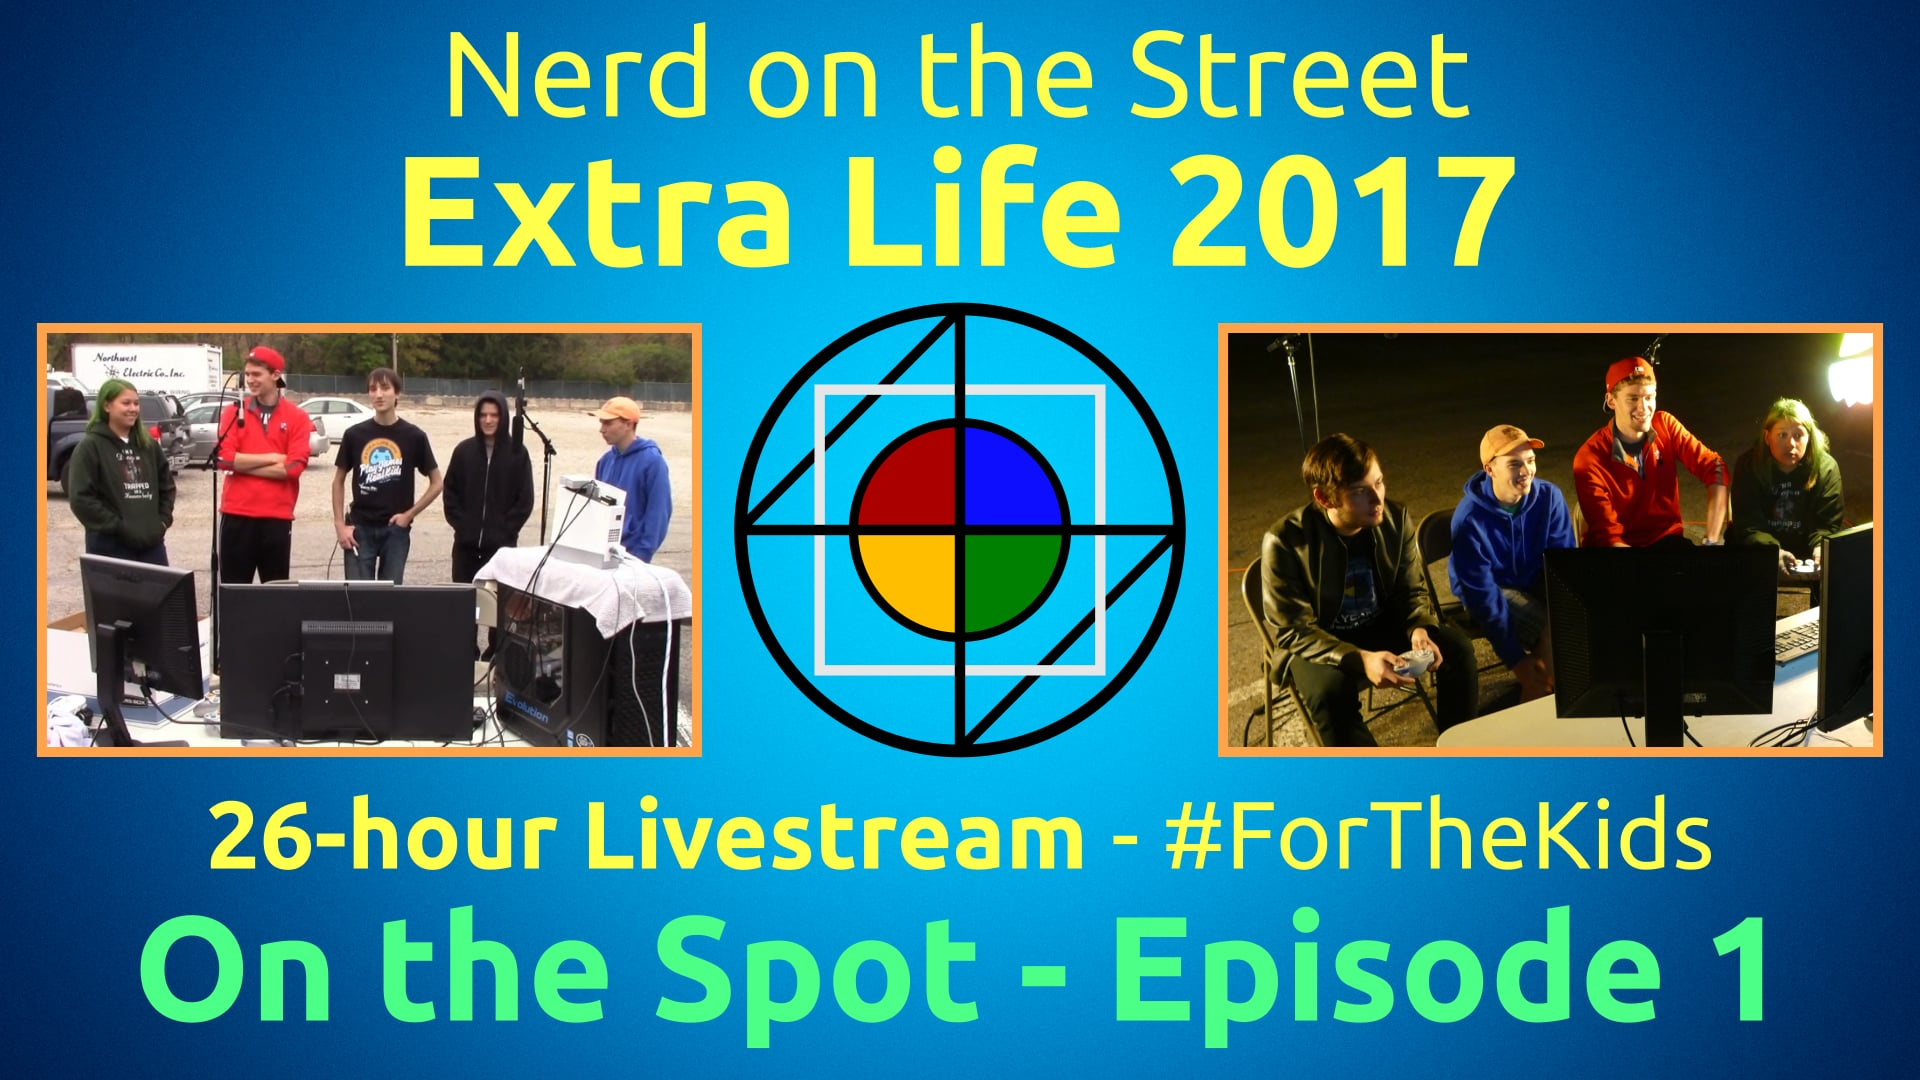 On the Spot #1 - Extra Life 2017